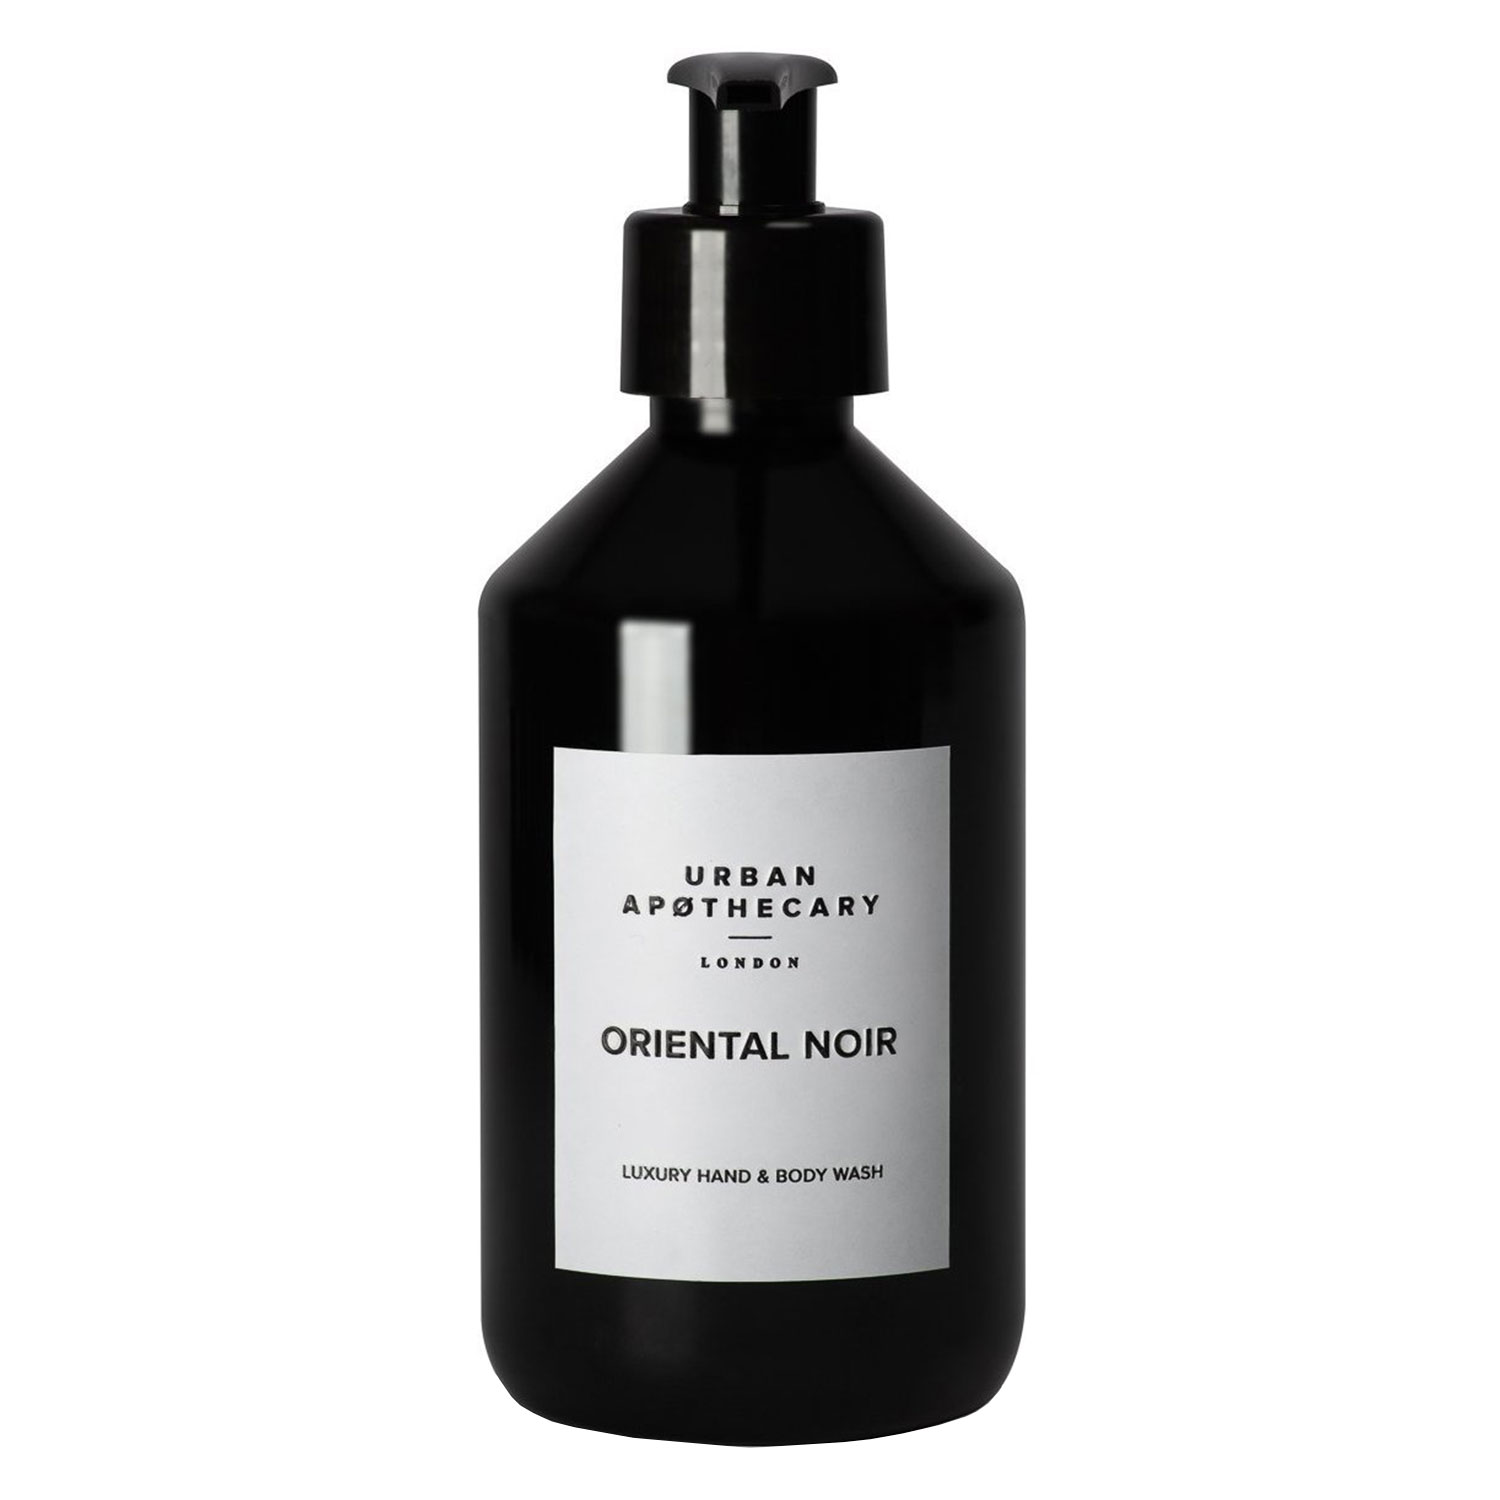 Urban Apothecary - Luxury Hand & Body Wash Oriental Noir